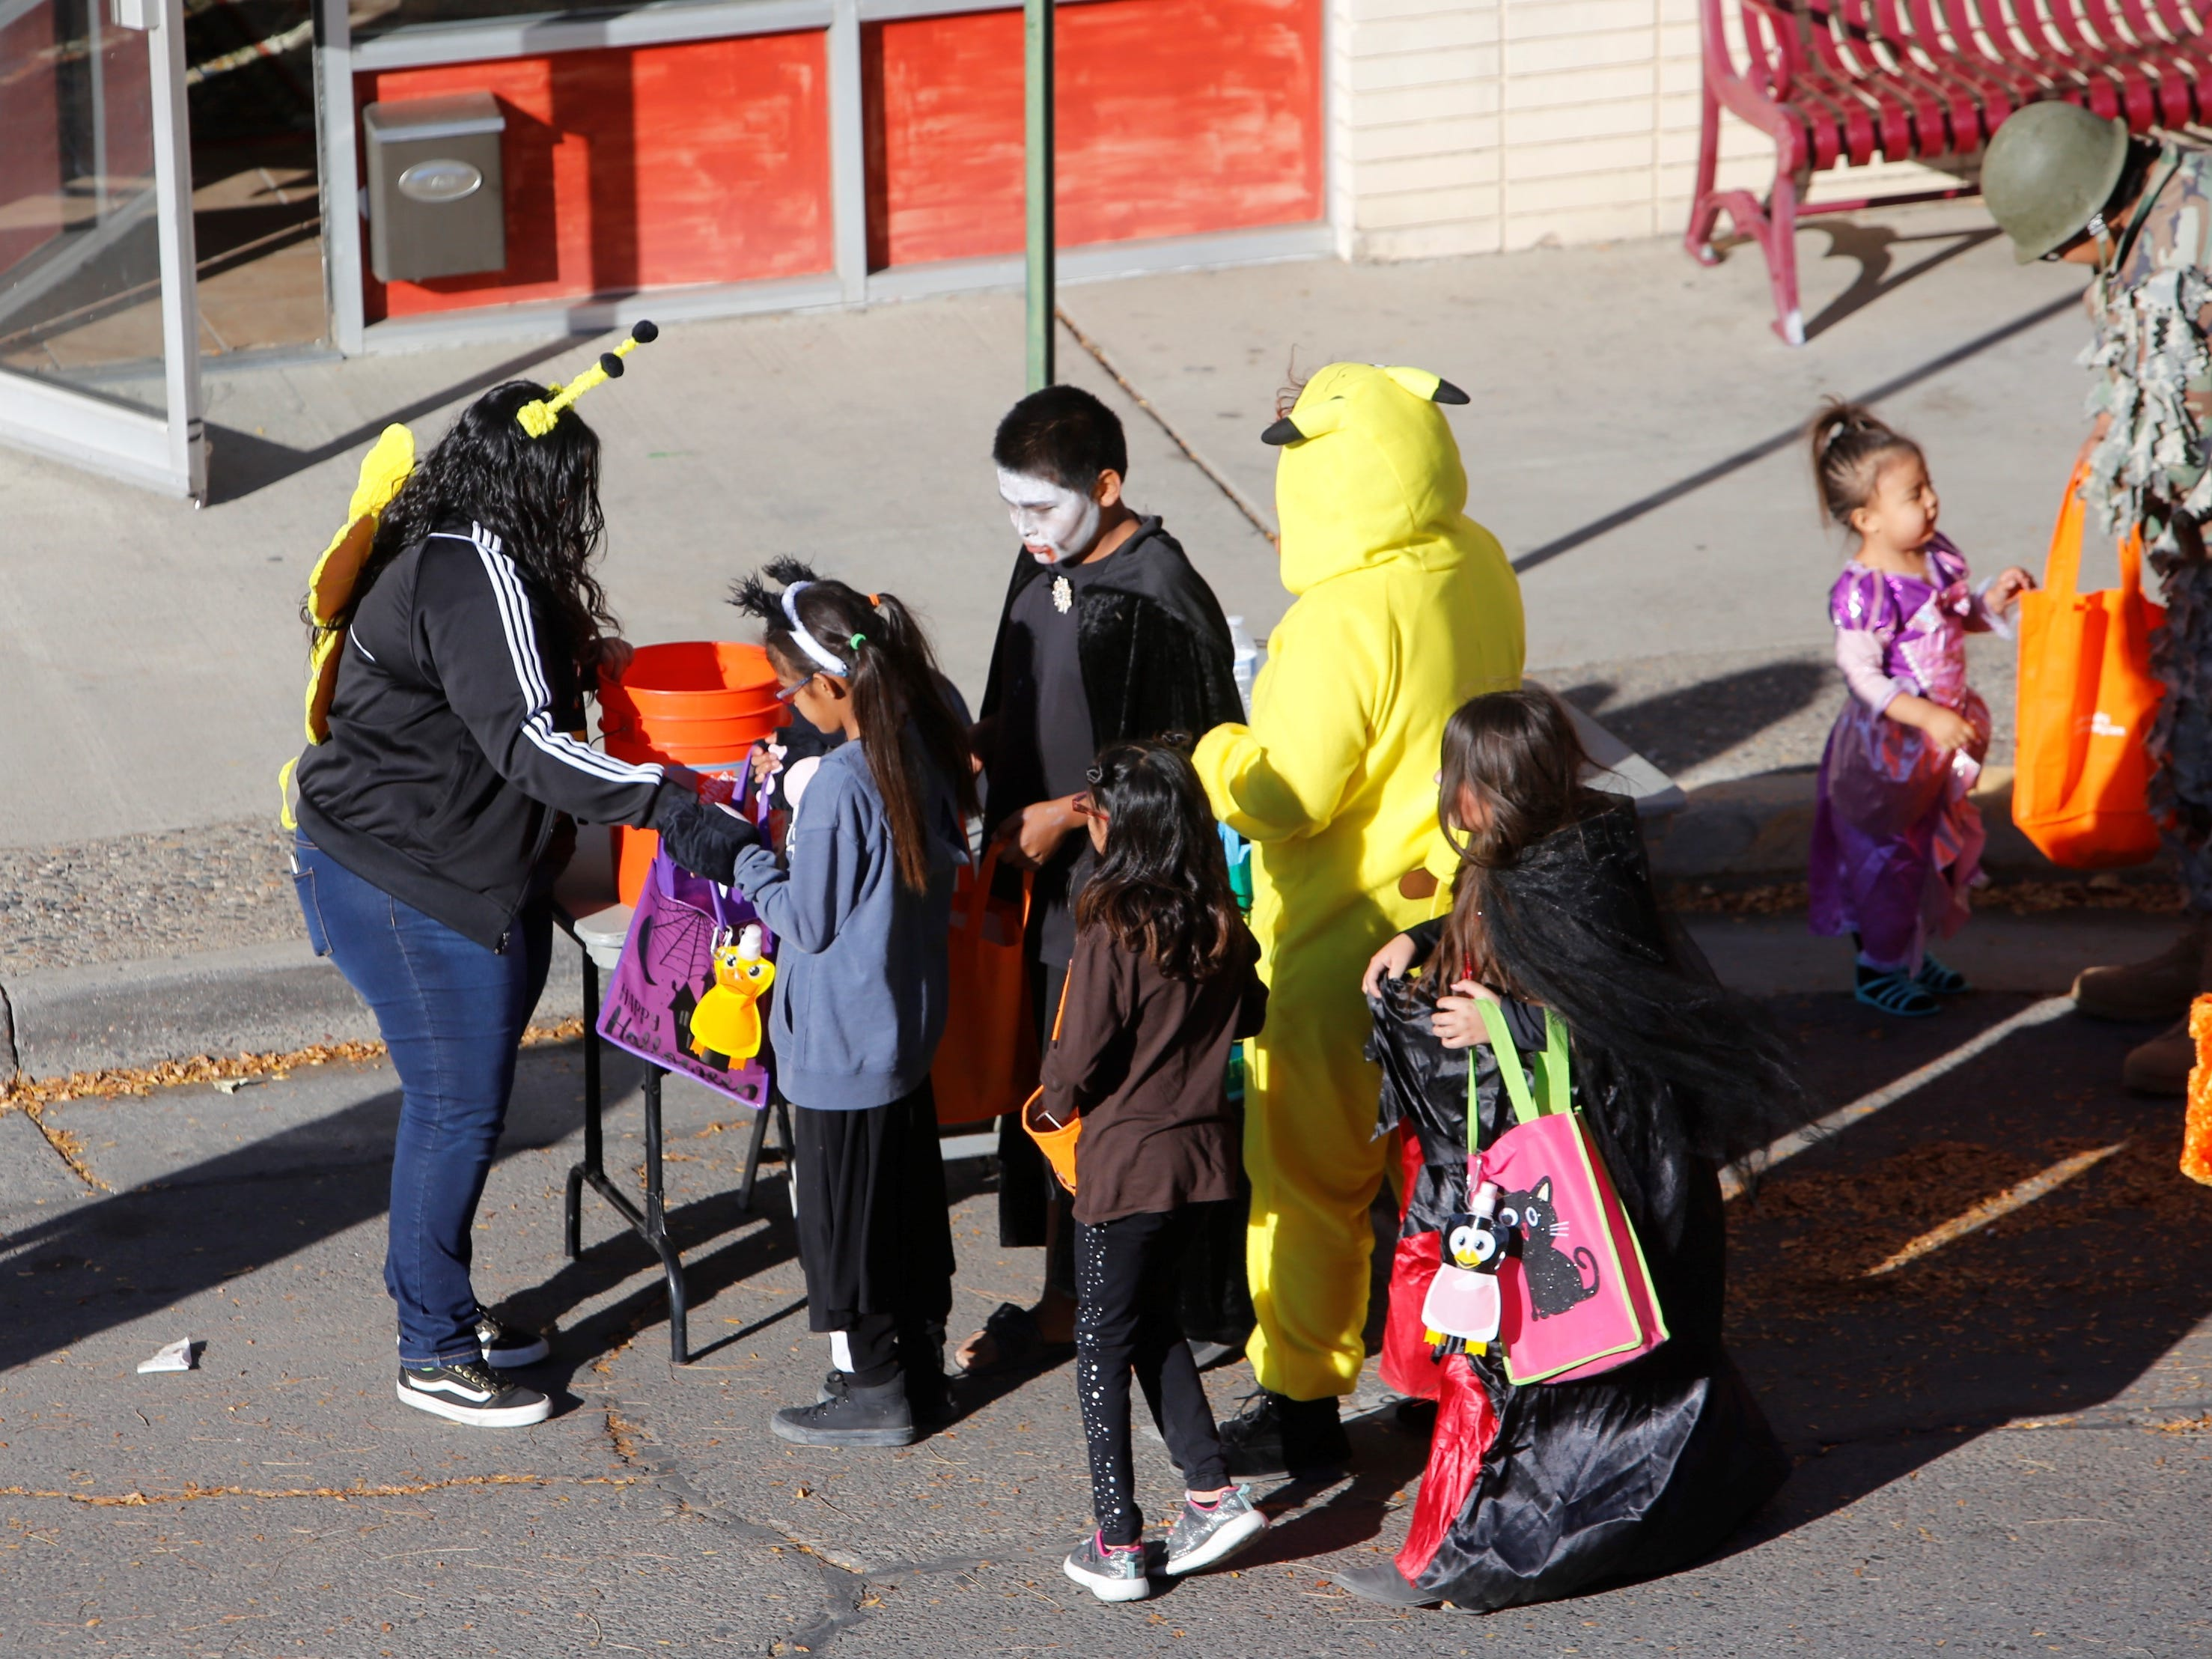 Trick or treaters line up to get candy walking down Main Street during BooPalooza Wednesday in Farmington.